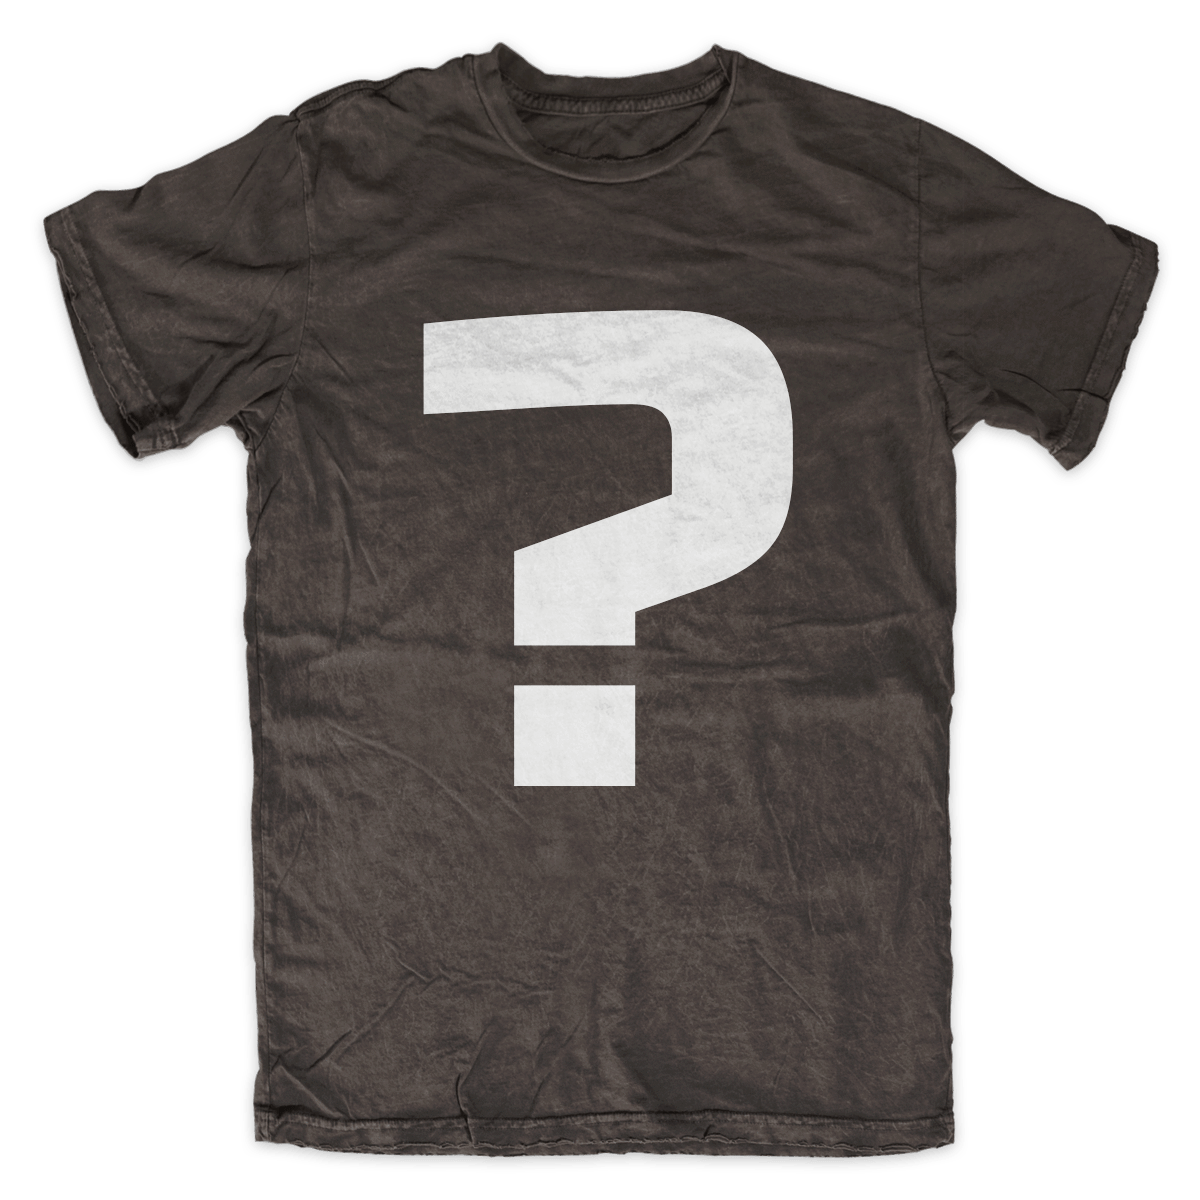 Pop Vulture: Black Friday Mystery Shirt